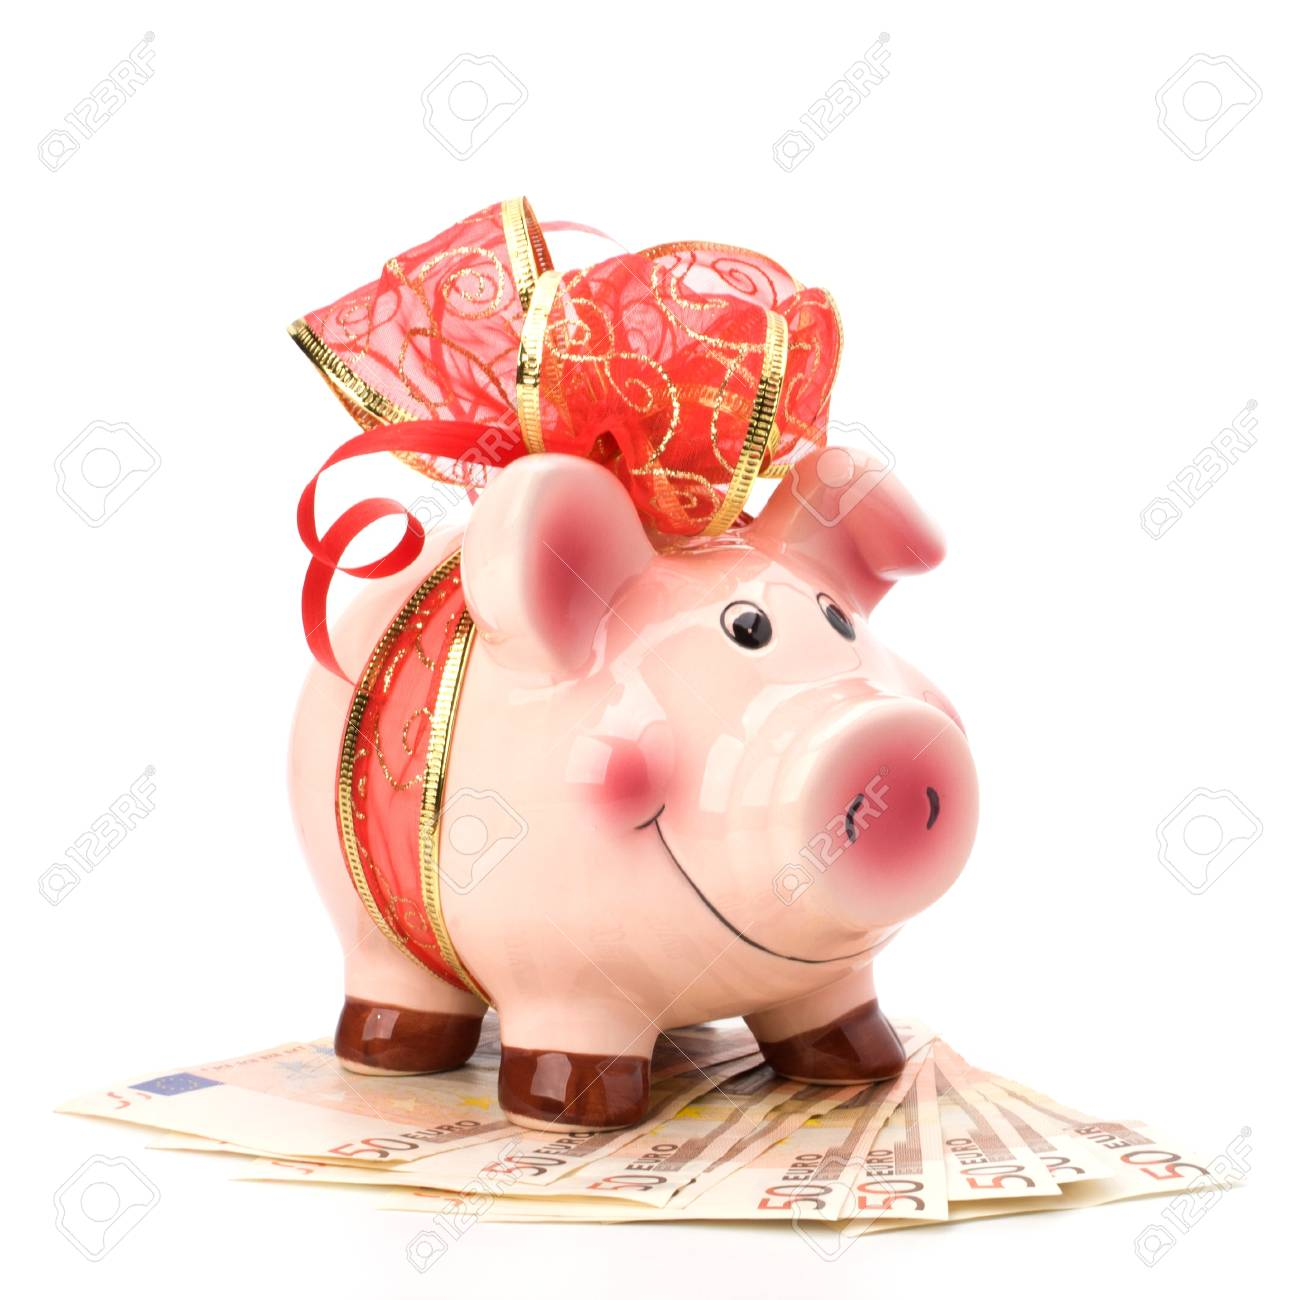 Christmas deposit concept. Piggy bank with festive bow isolated on white. Stock Photo - 8527154